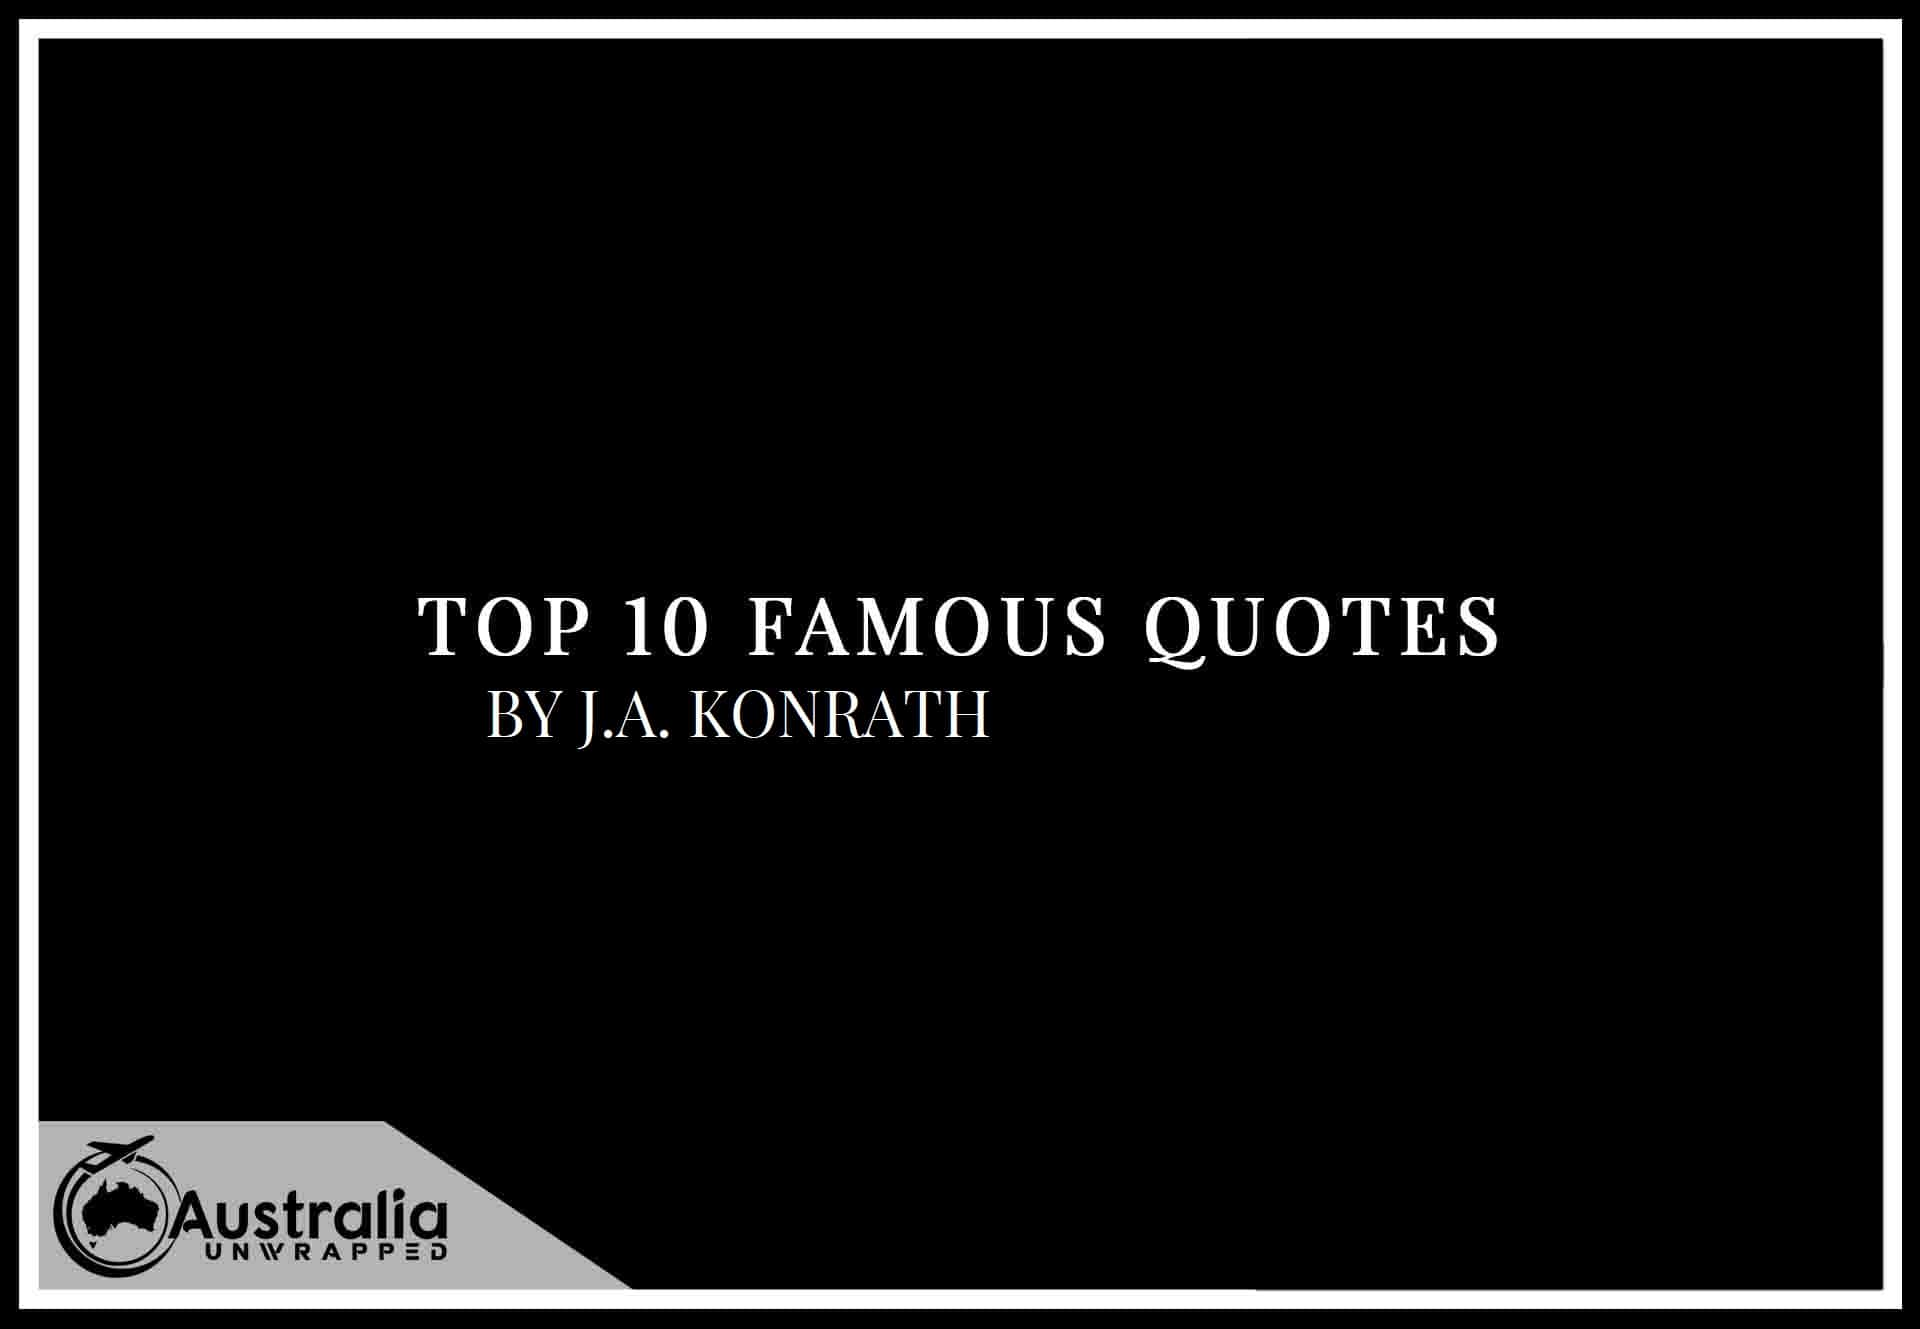 Top 10 Famous Quotes by Author J. A. Konrath